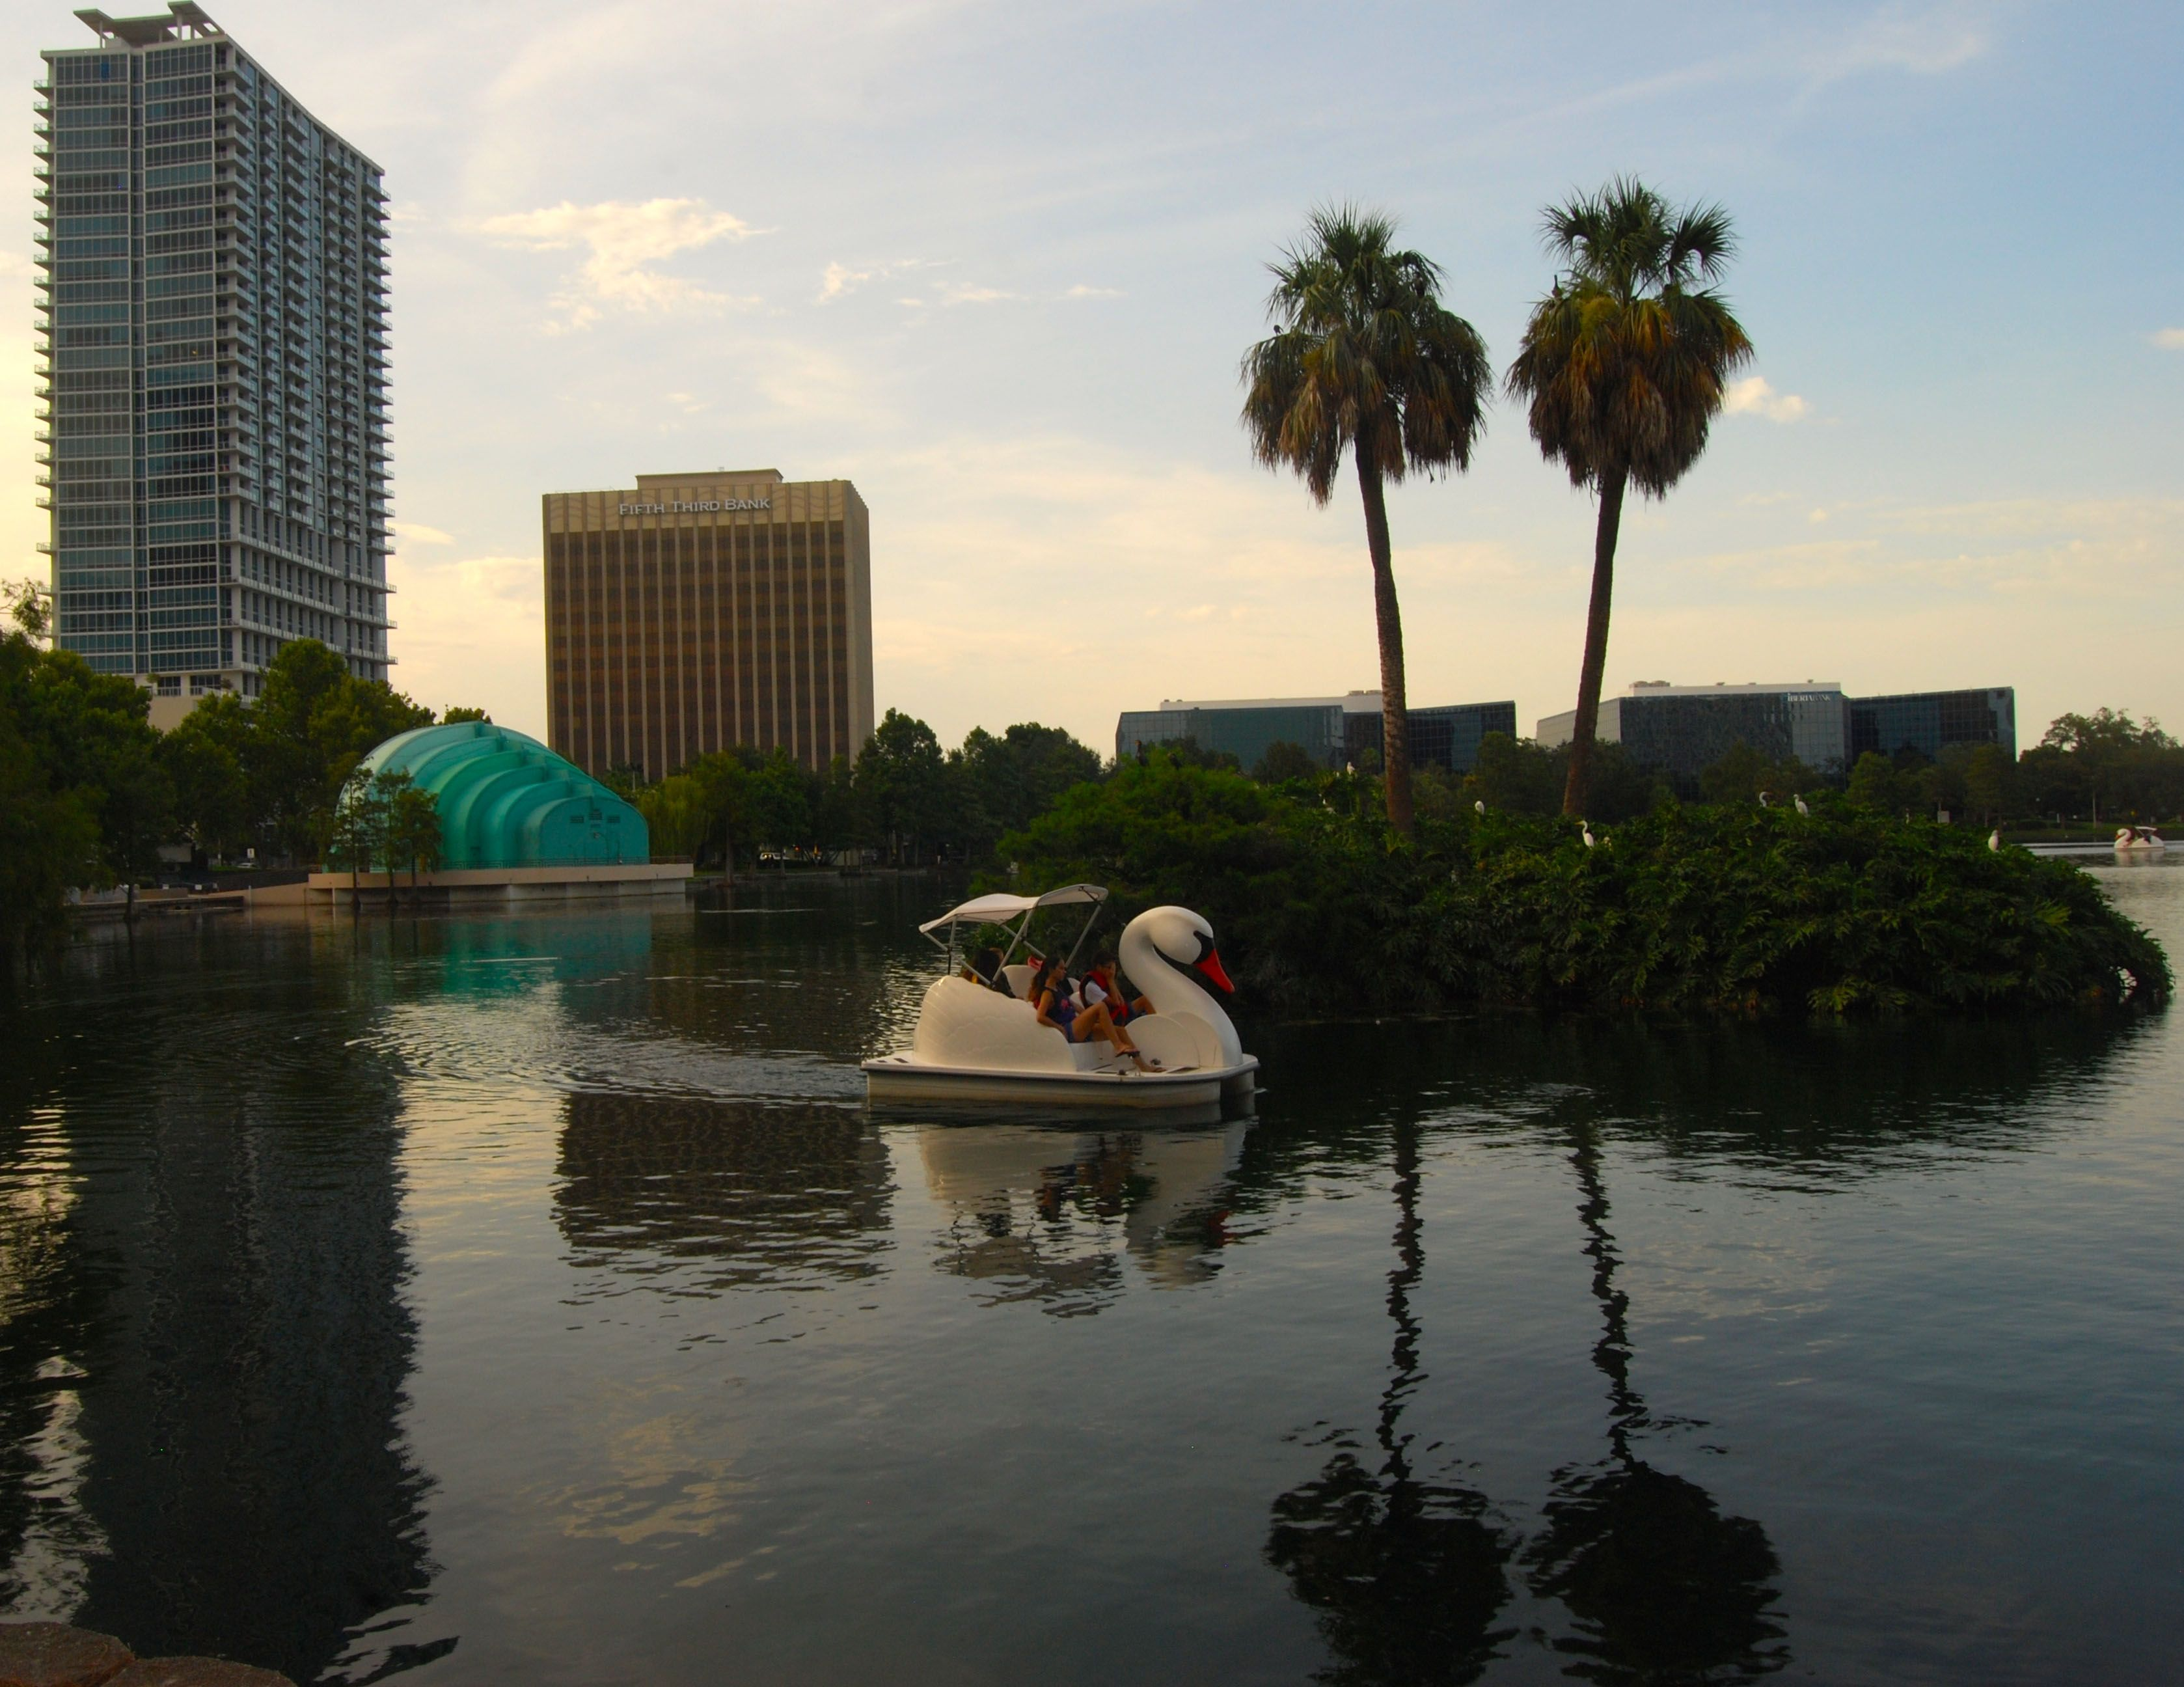 A ride on a swanshaped paddle boat is a great way to